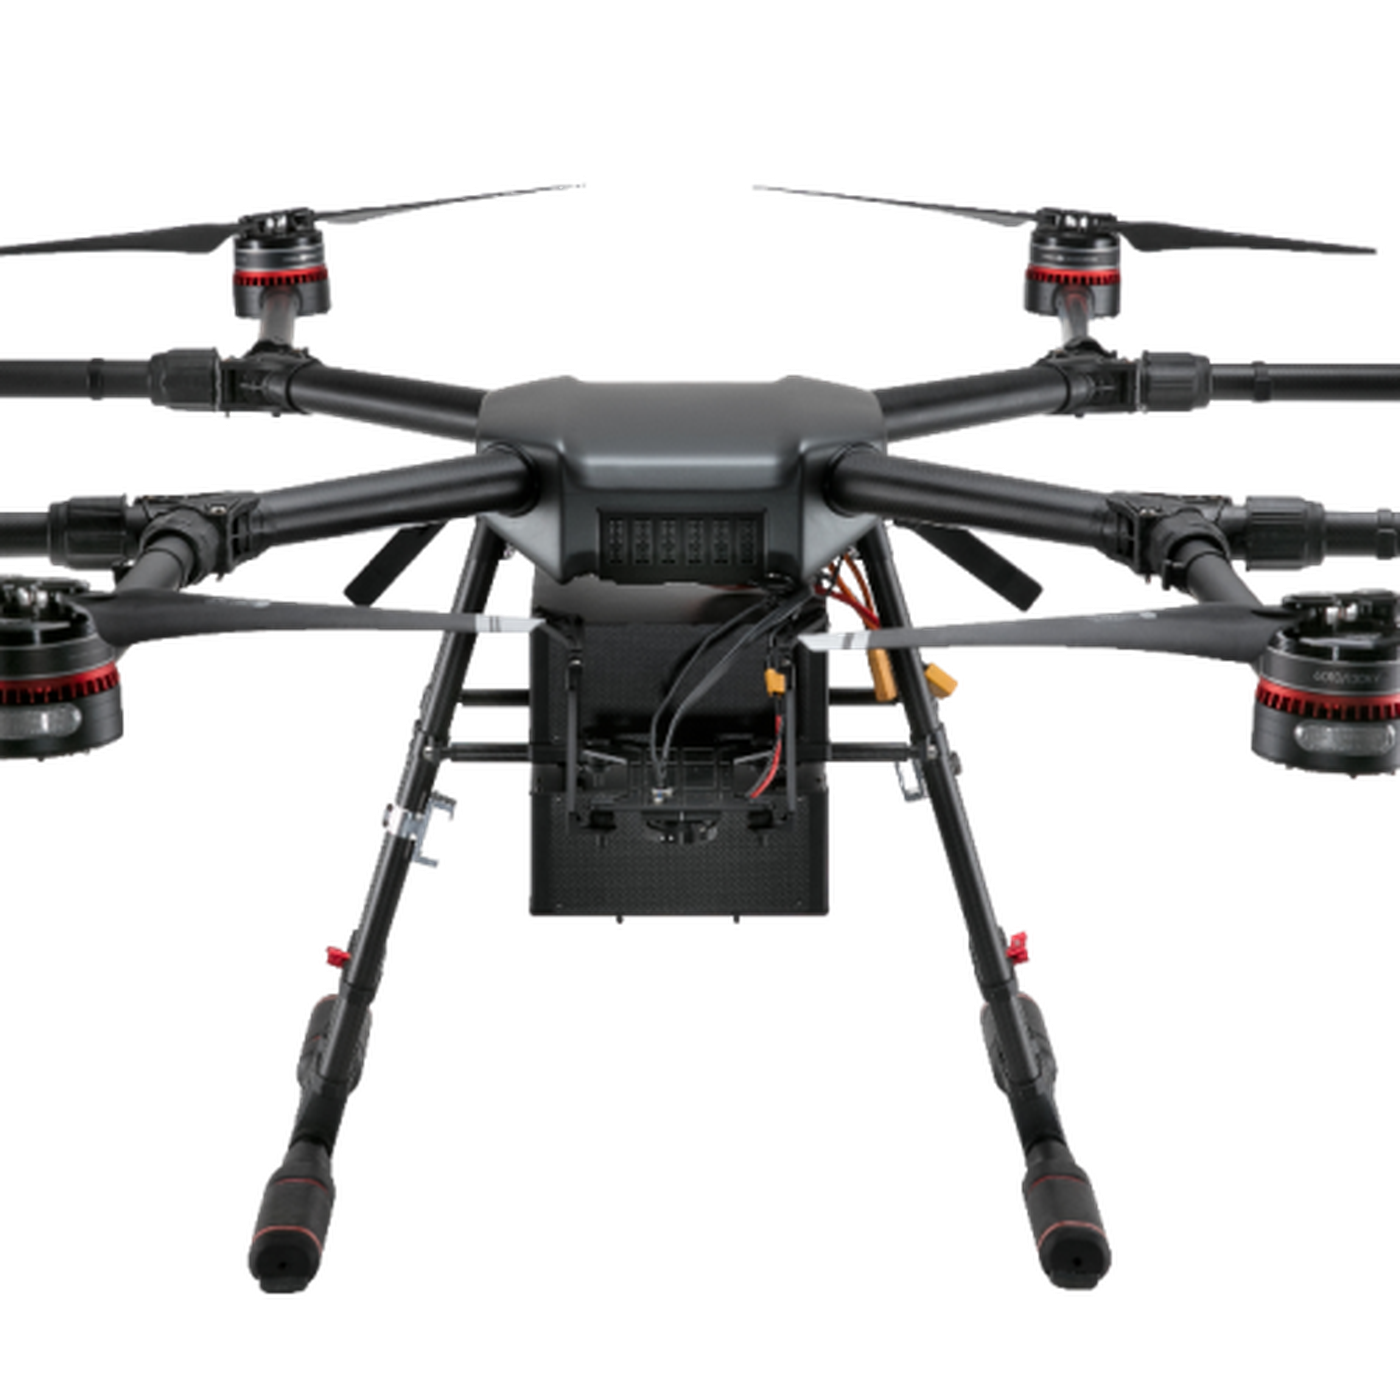 DJI introduces two new Wind drones and FlightHub software - The Verge